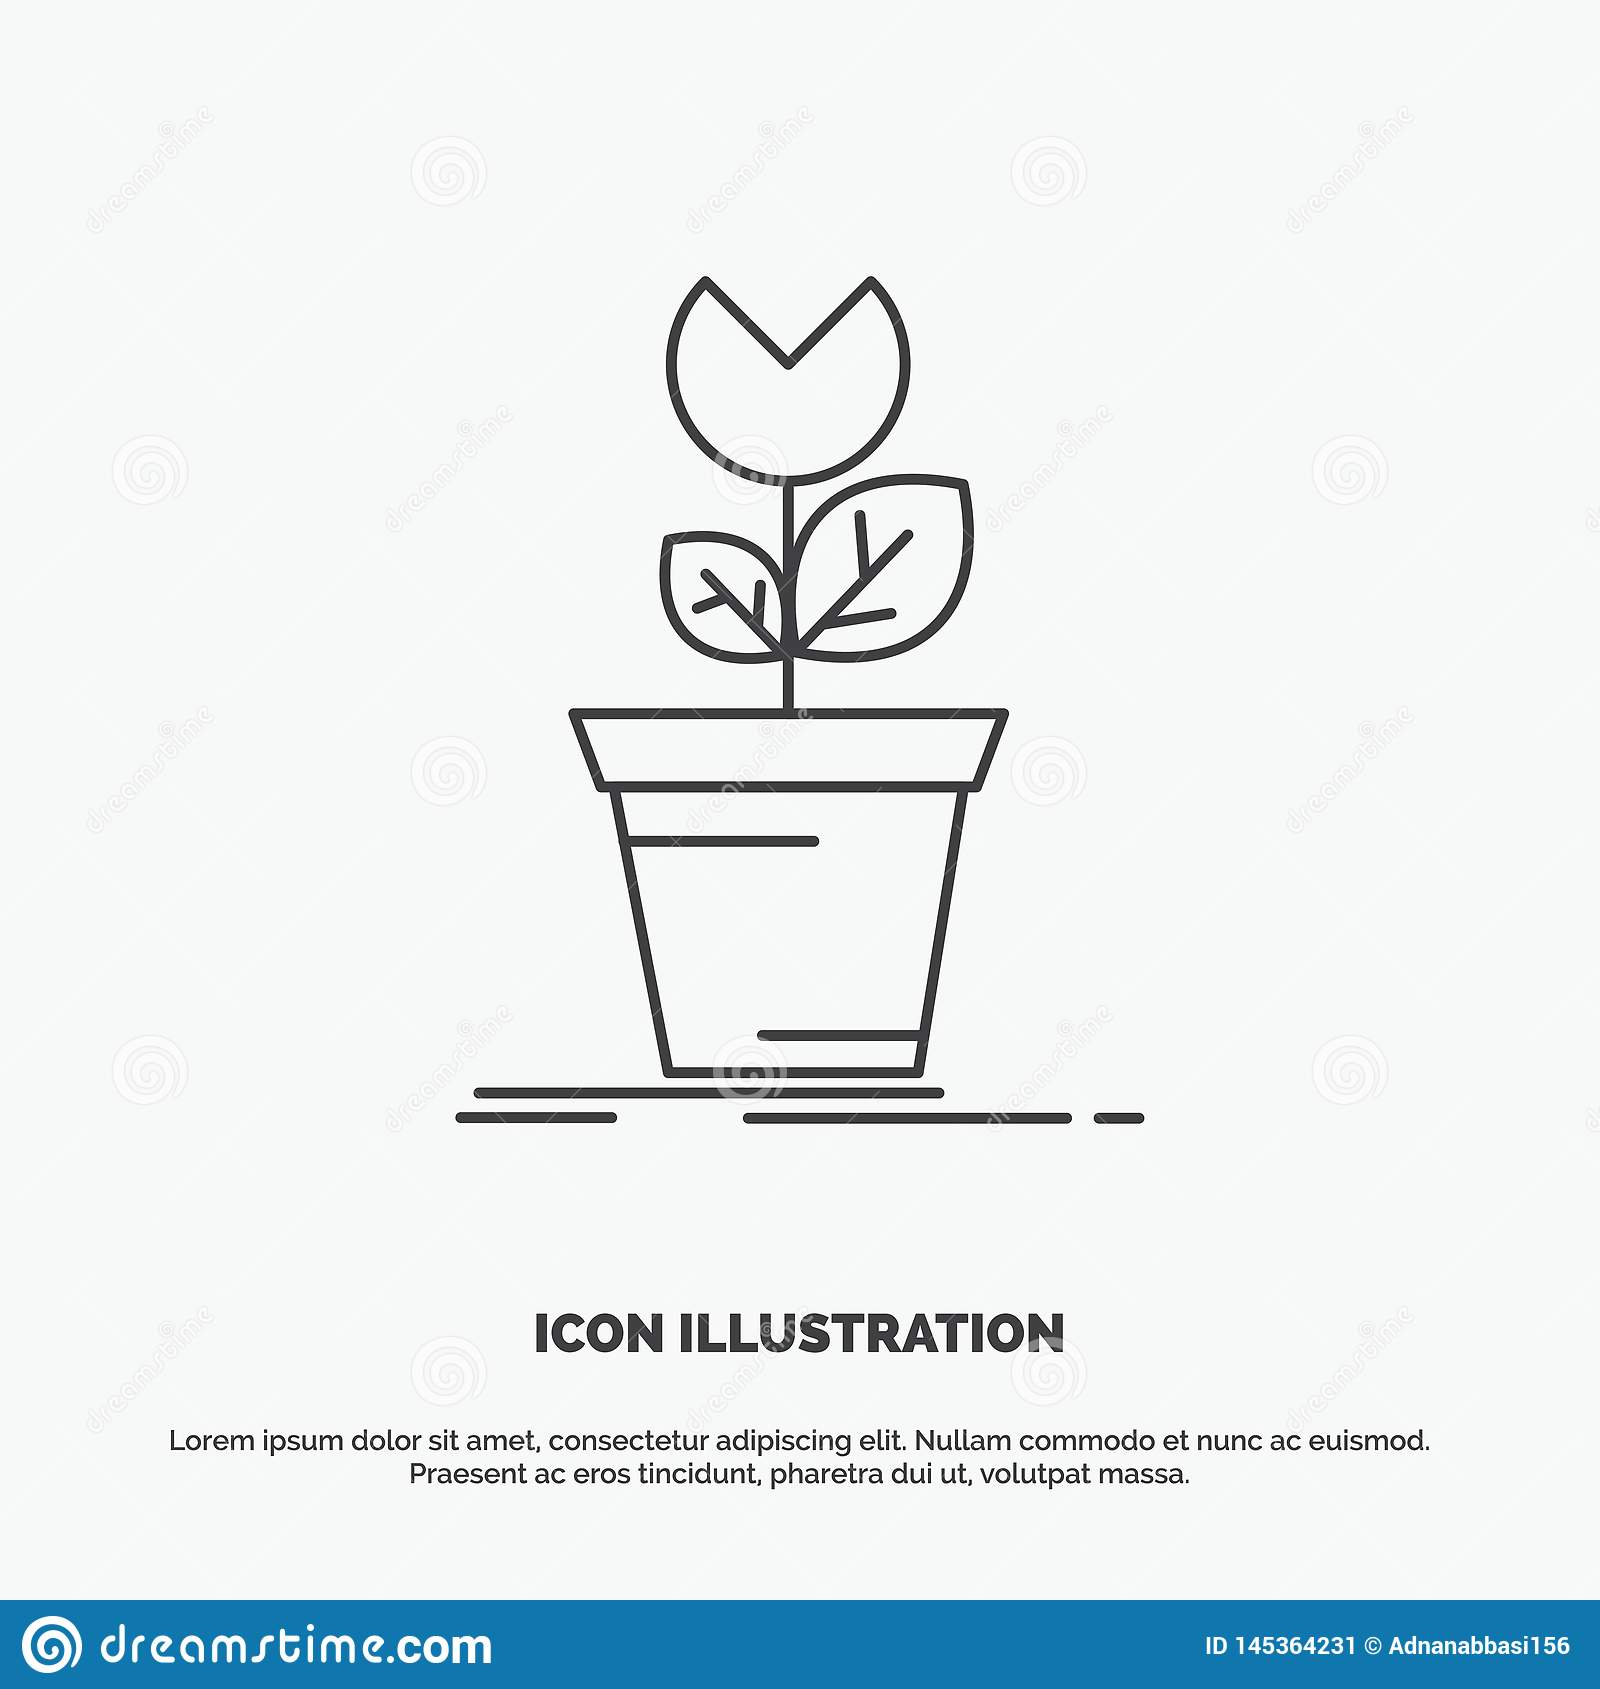 Adventure, Game, Mario, Obstacle, Plant Icon  Line Vector